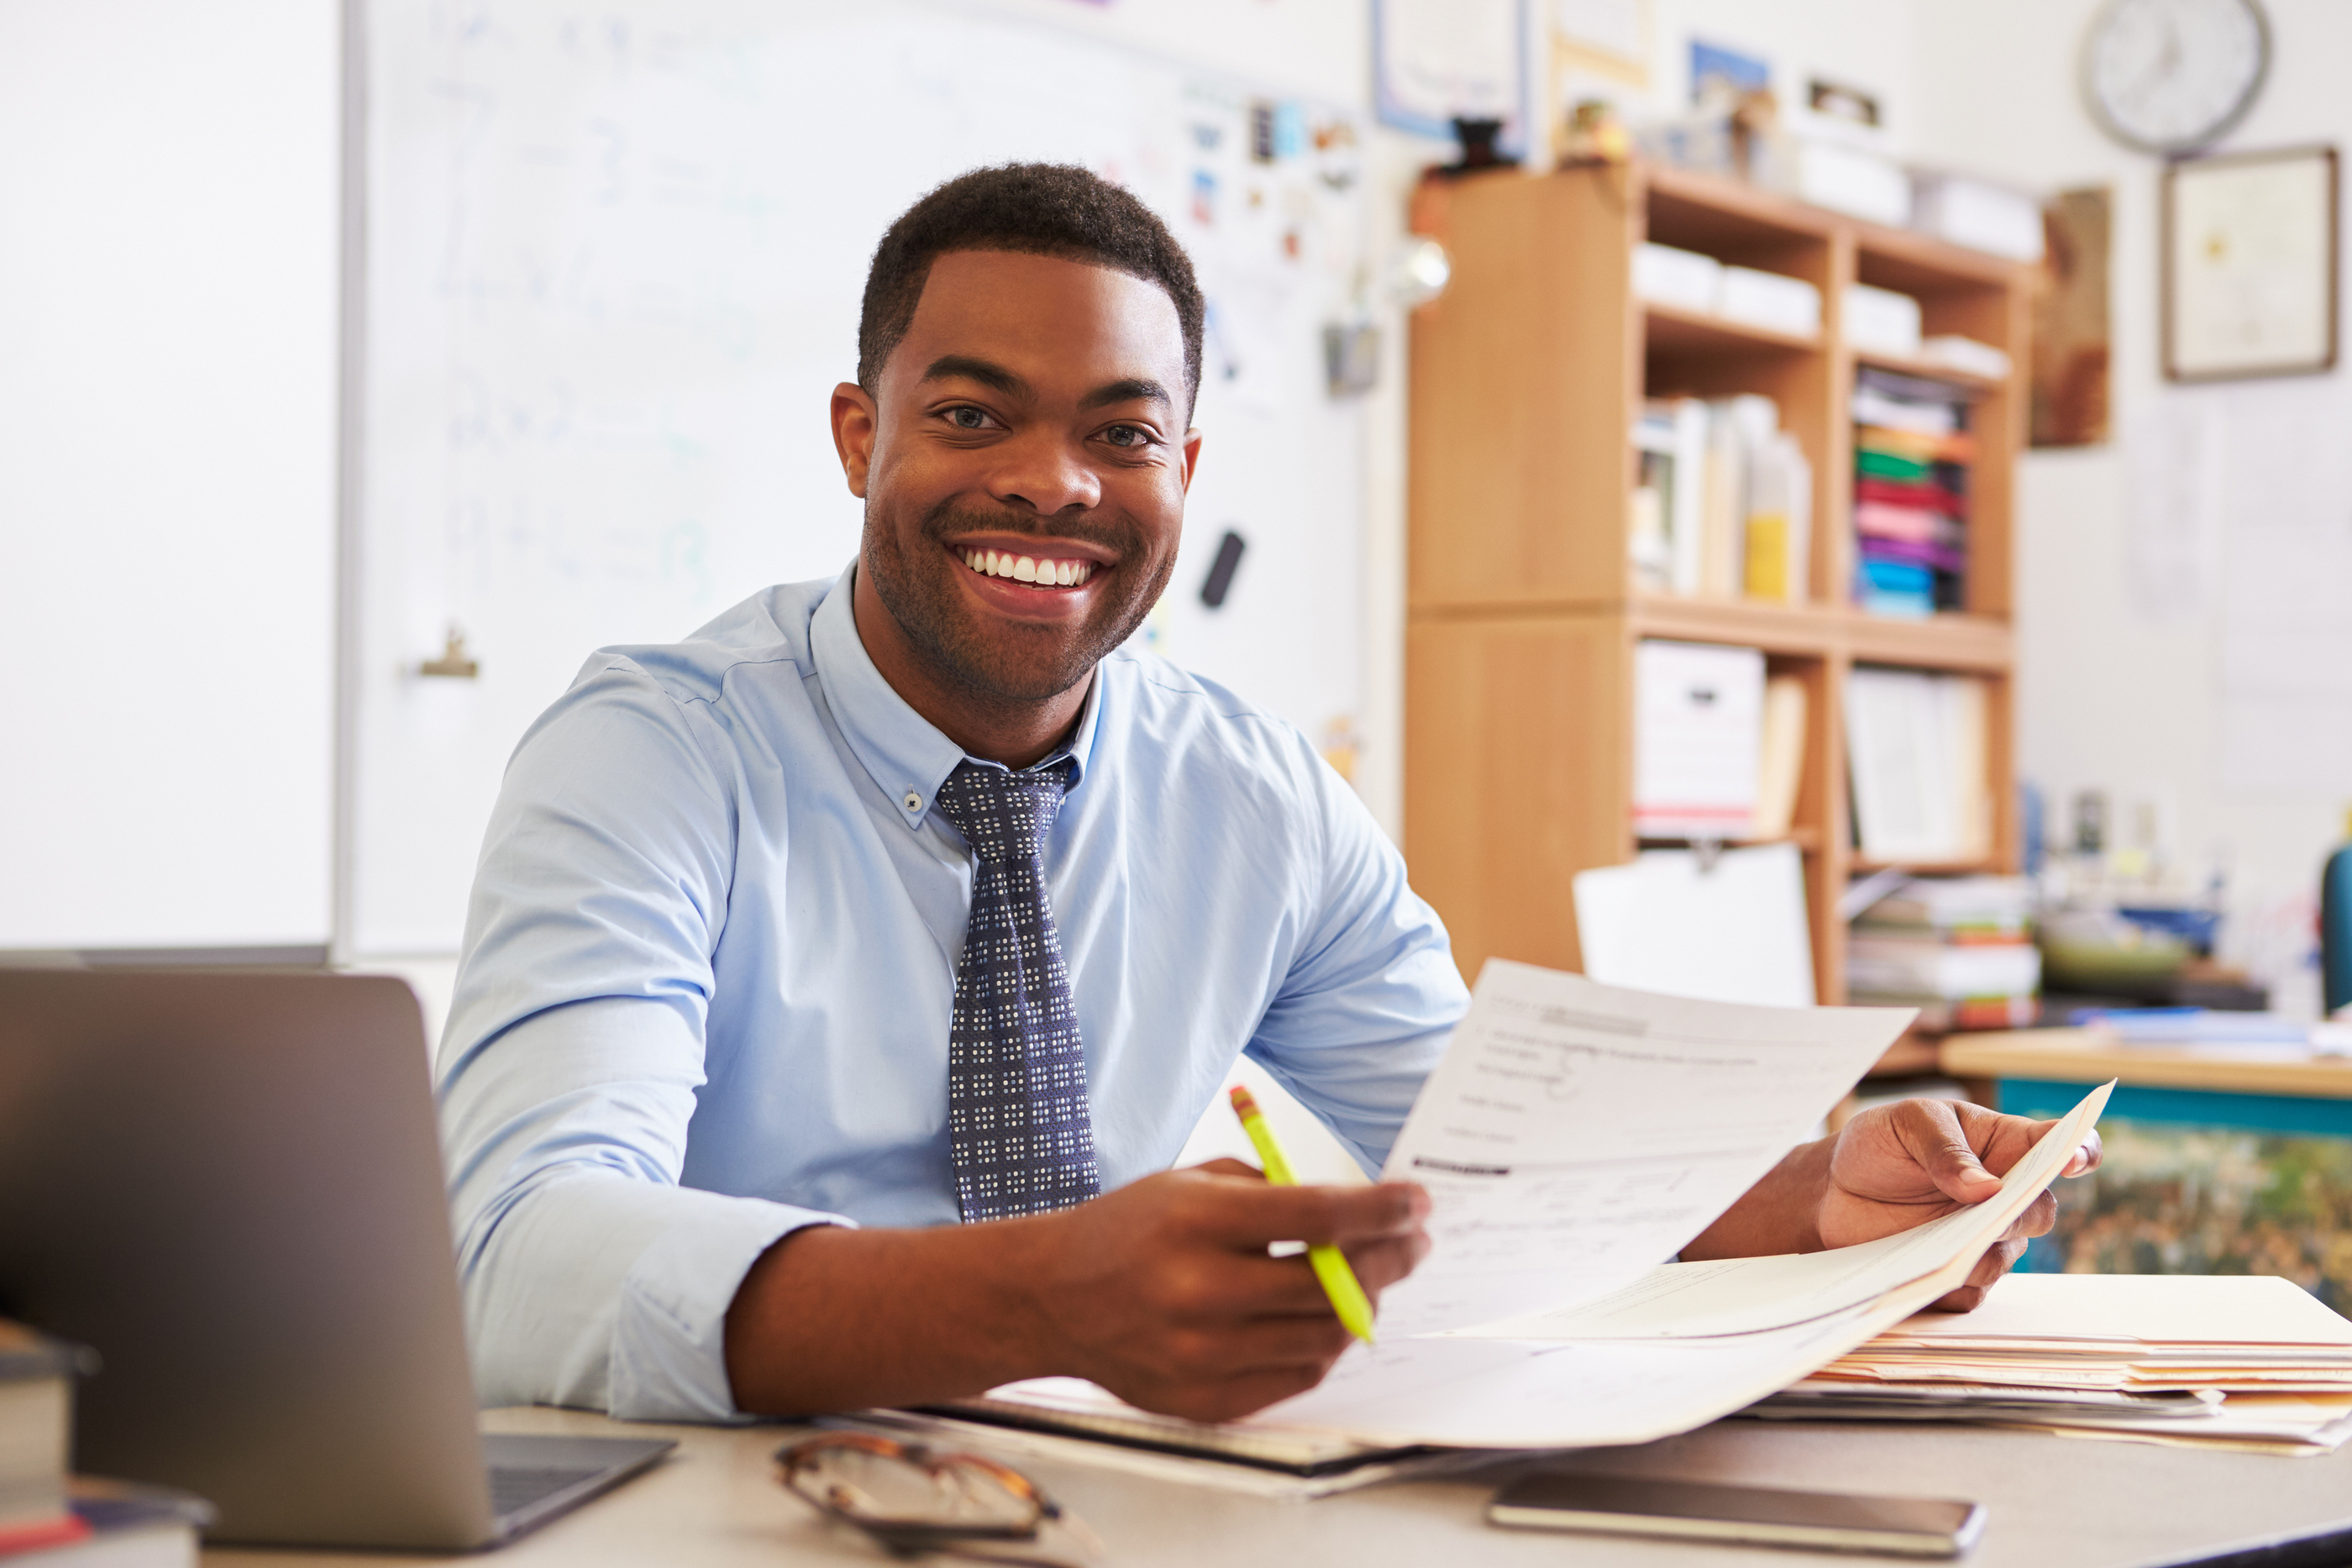 Portrait of African American male teacher working at desk